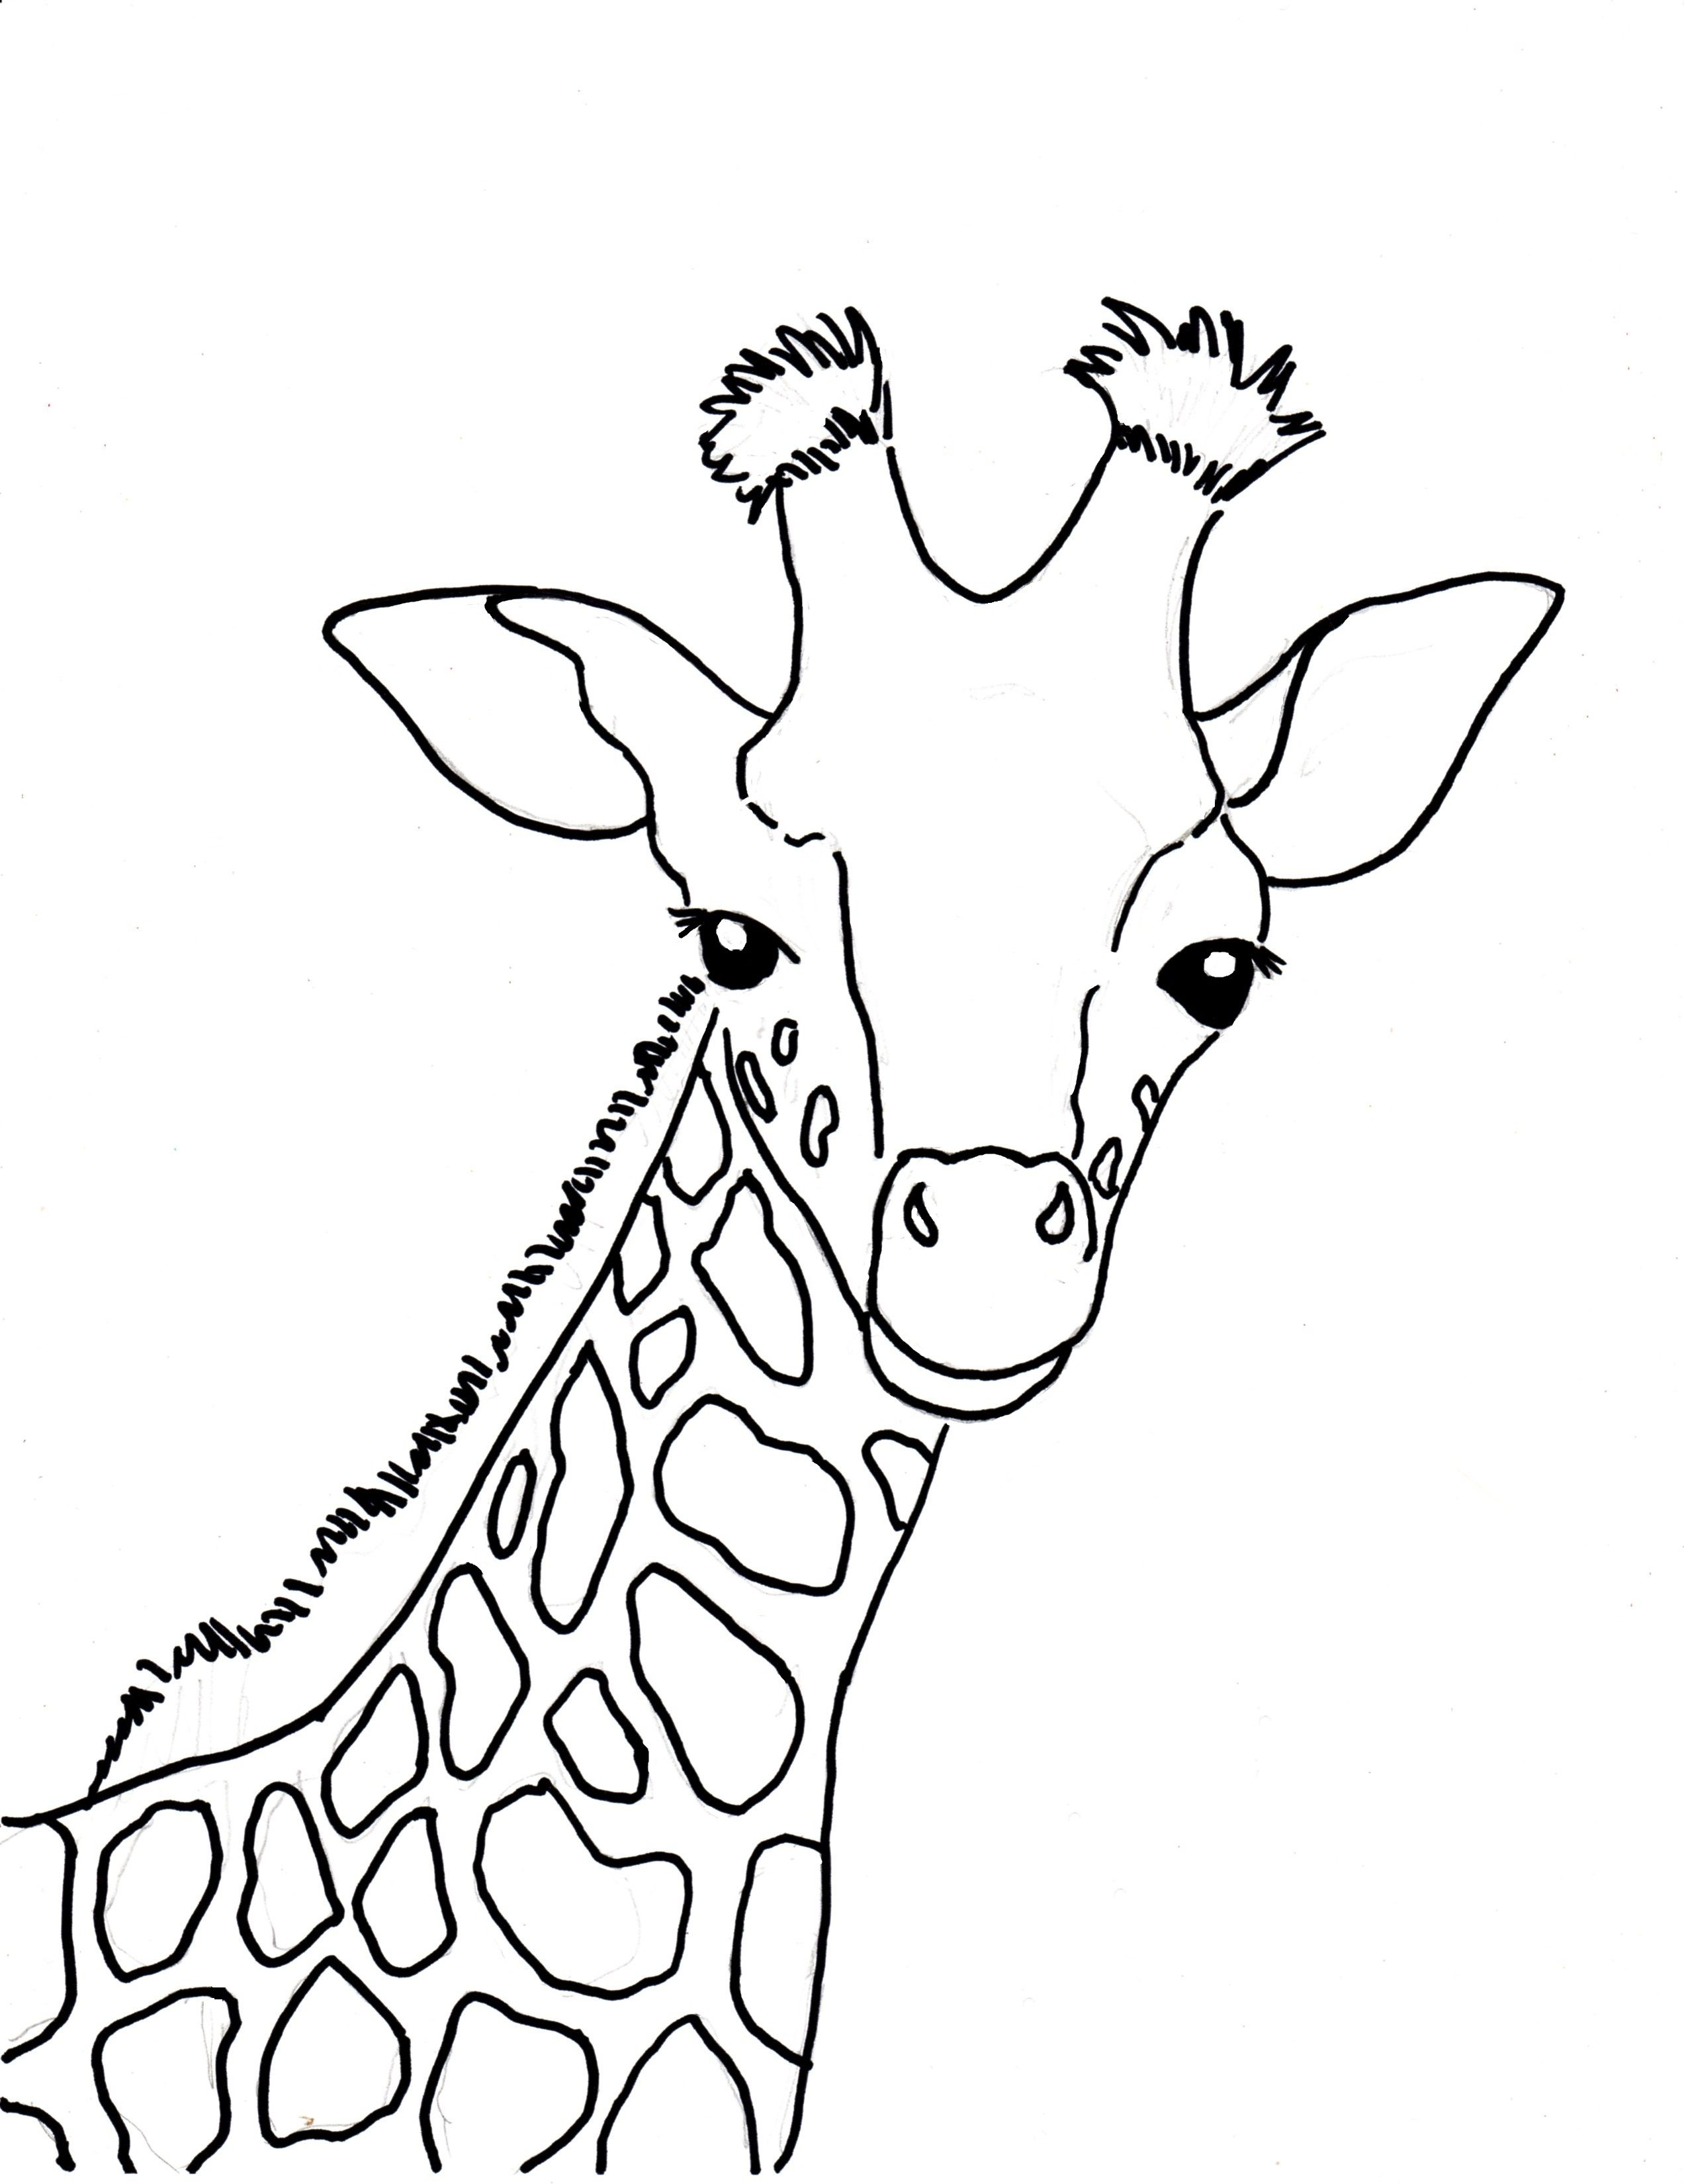 Baby Giraffe Coloring Page Samantha Bell Search Results Fun